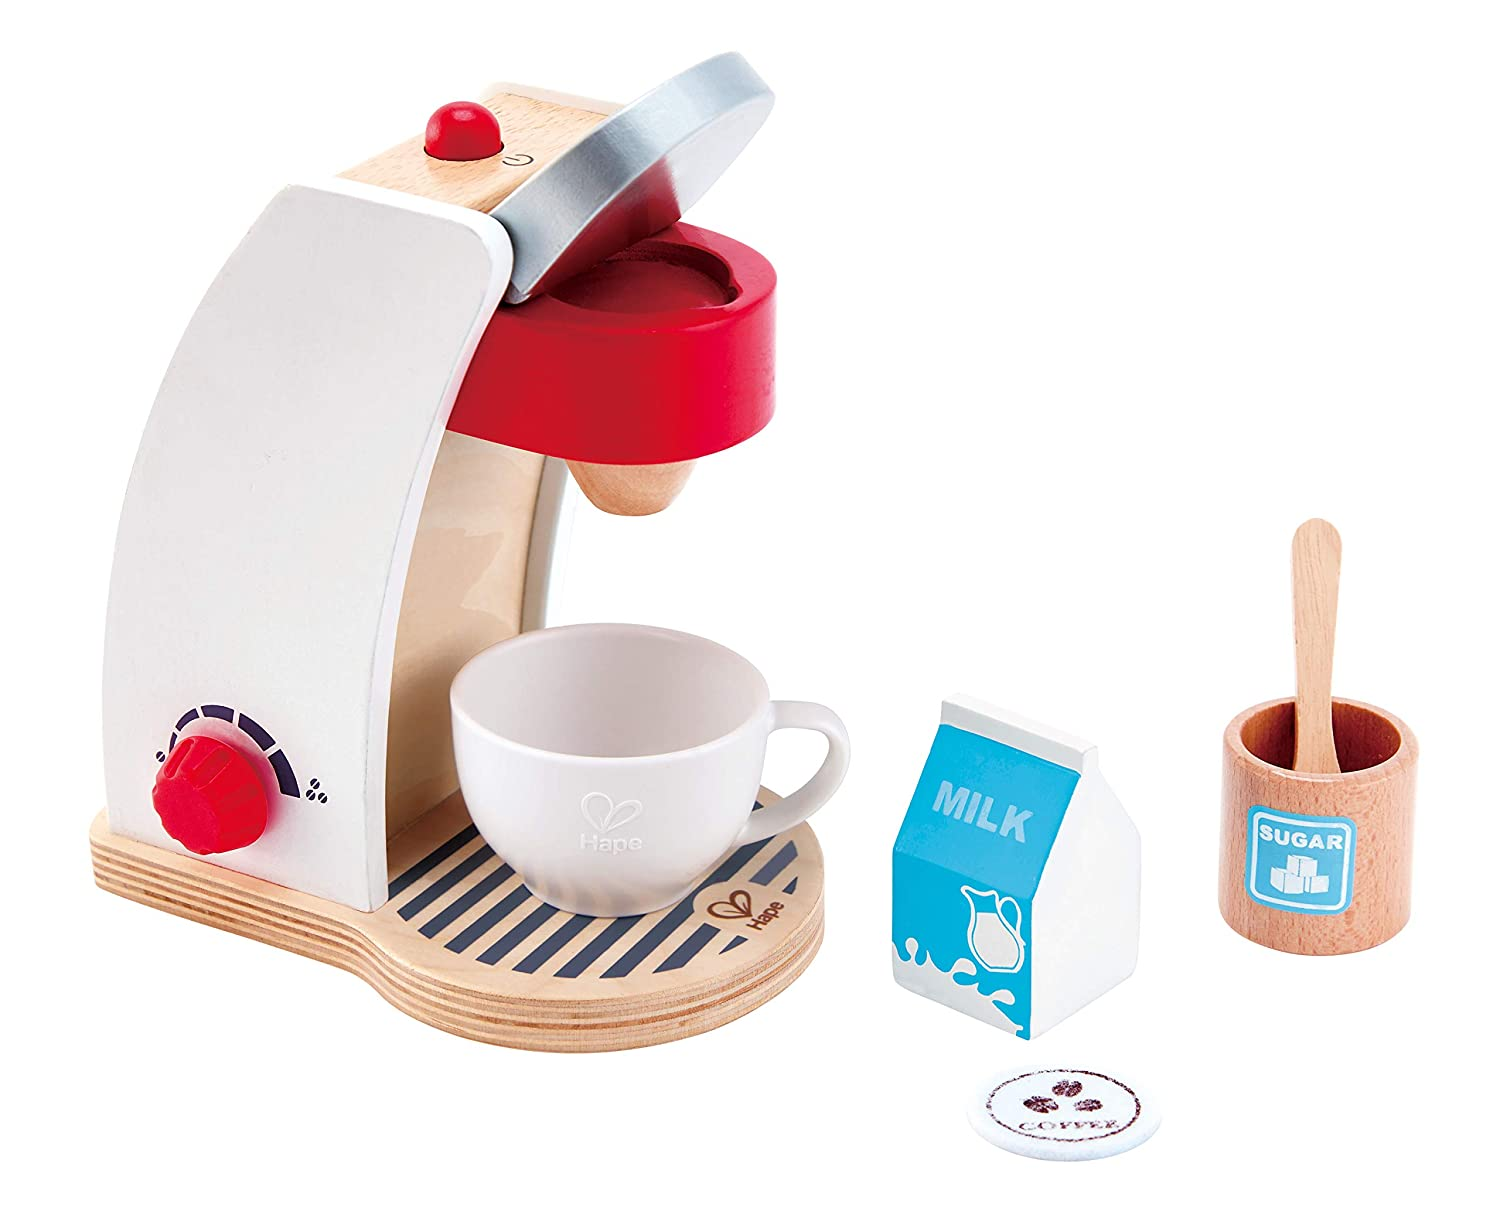 Hape My Coffee Machine Wooden Play Kitchen Set with Accessories (White)